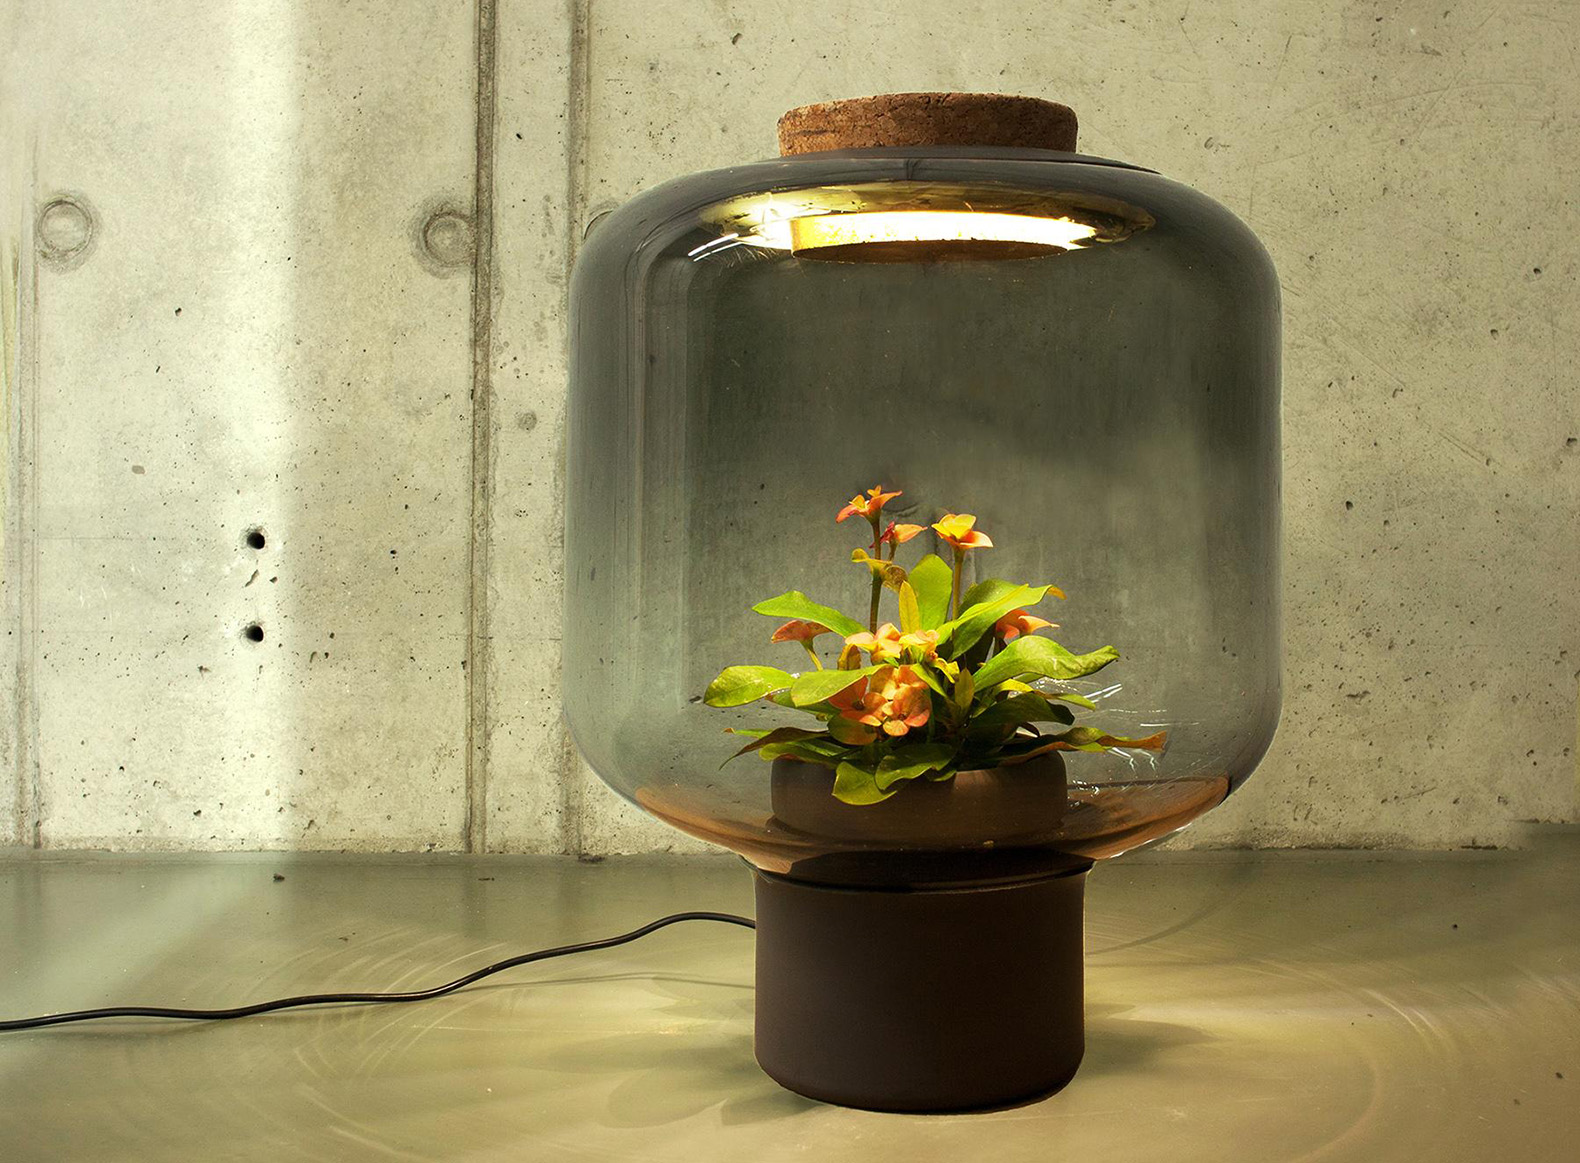 These lamps let you grow plants anywhere even in windowless rooms inhabitat green design - Plant growing lamps ...